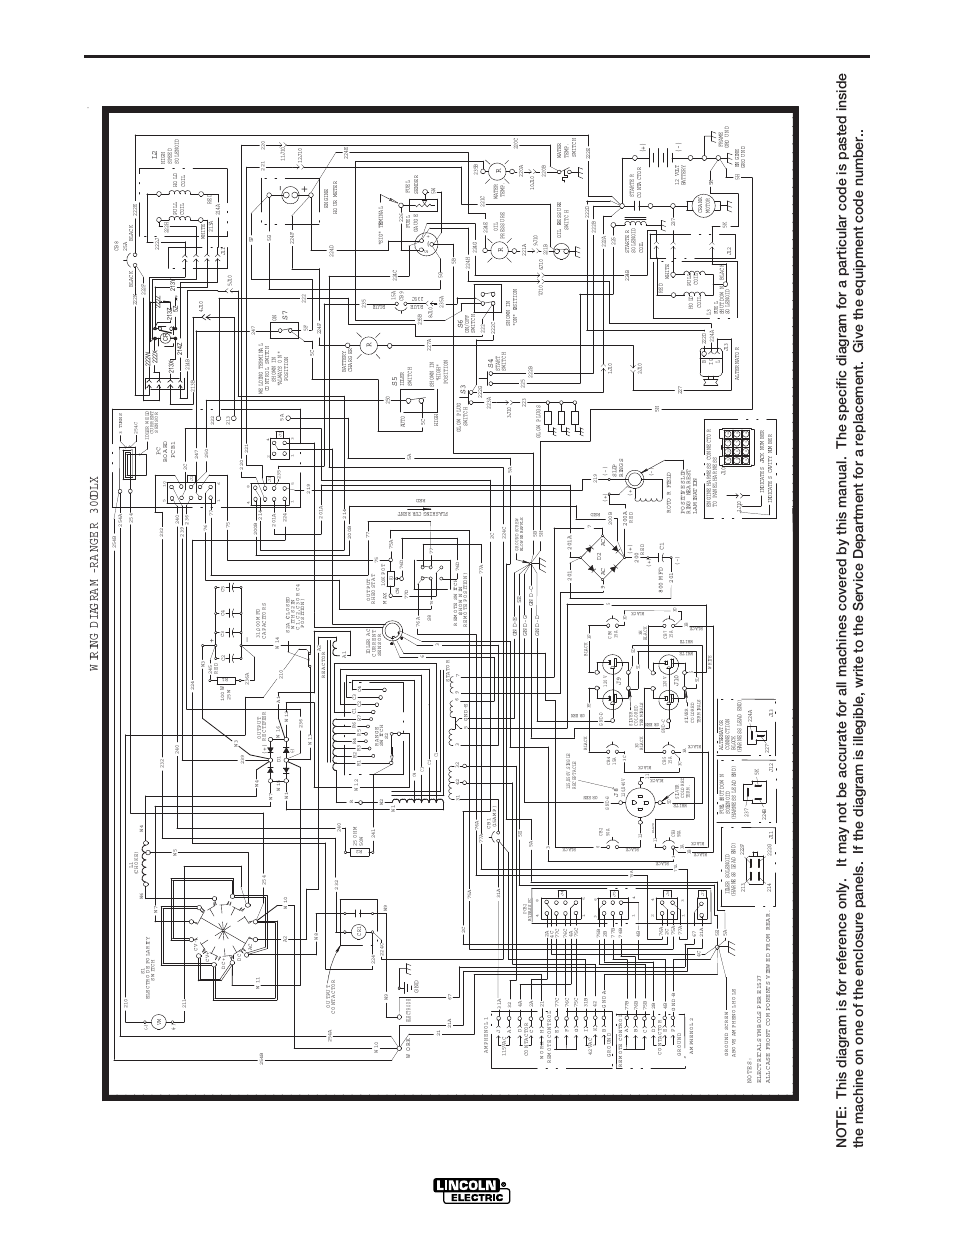 Wiring diagram | Lincoln Electric IM571 RANGER 300 D and 300 DLX User  Manual | Page 49 / 56 | Original modeManuals Directory